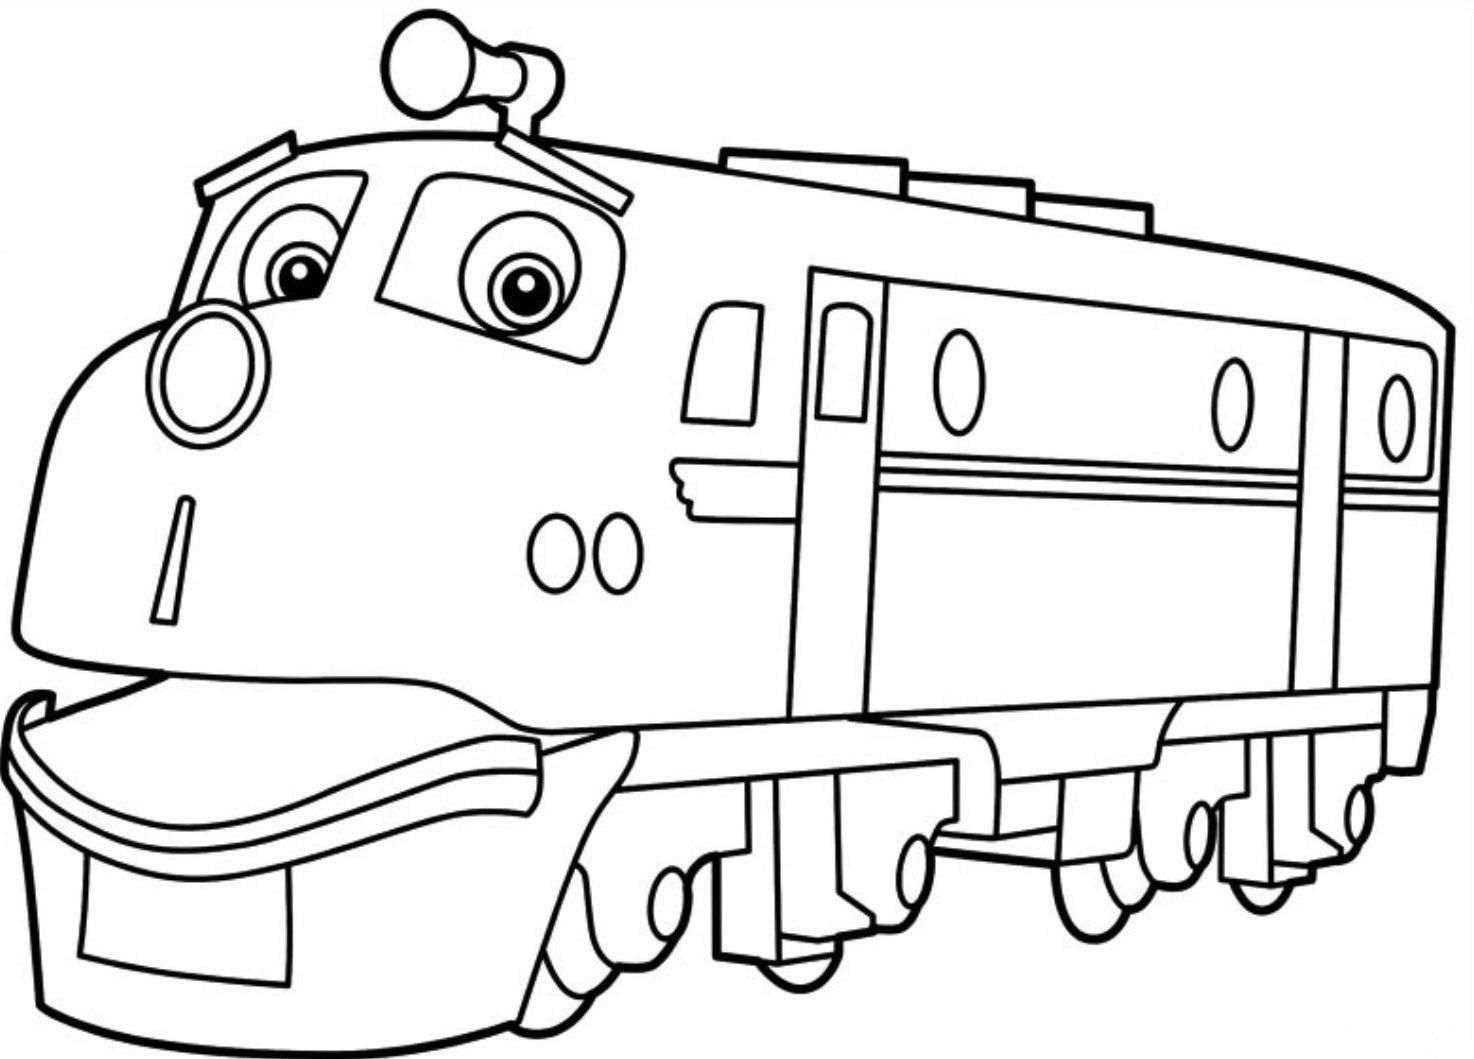 Chuggington Coloring Pages Print | Chuggington Coloring Pages ...